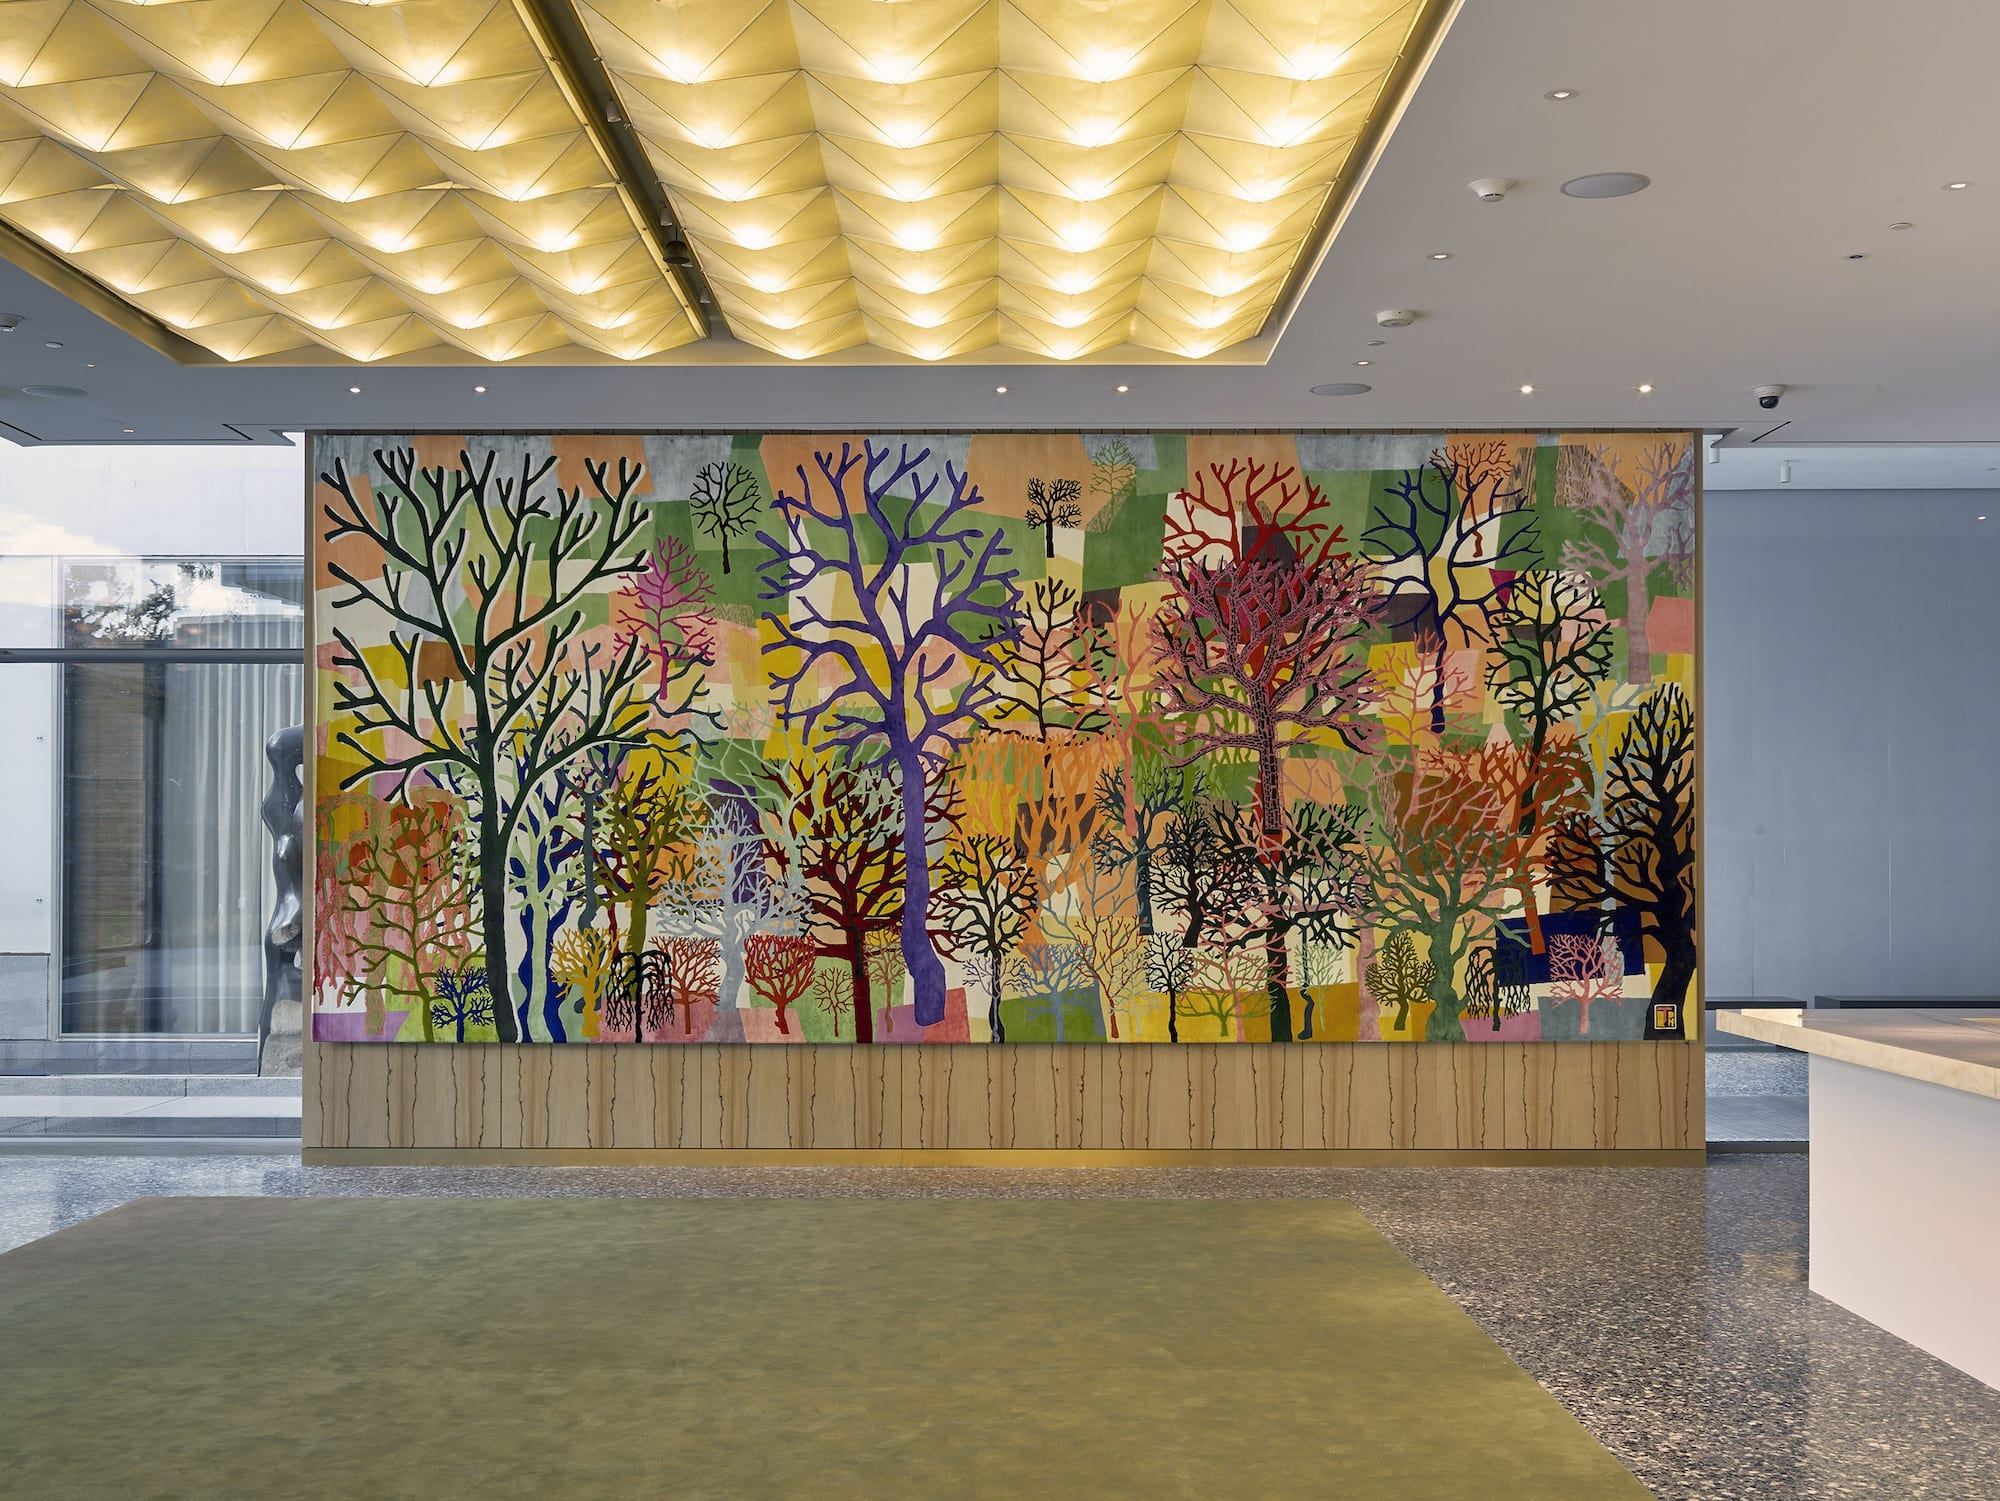 Trenton D. Hancock's tapestry of trees for the MFAH